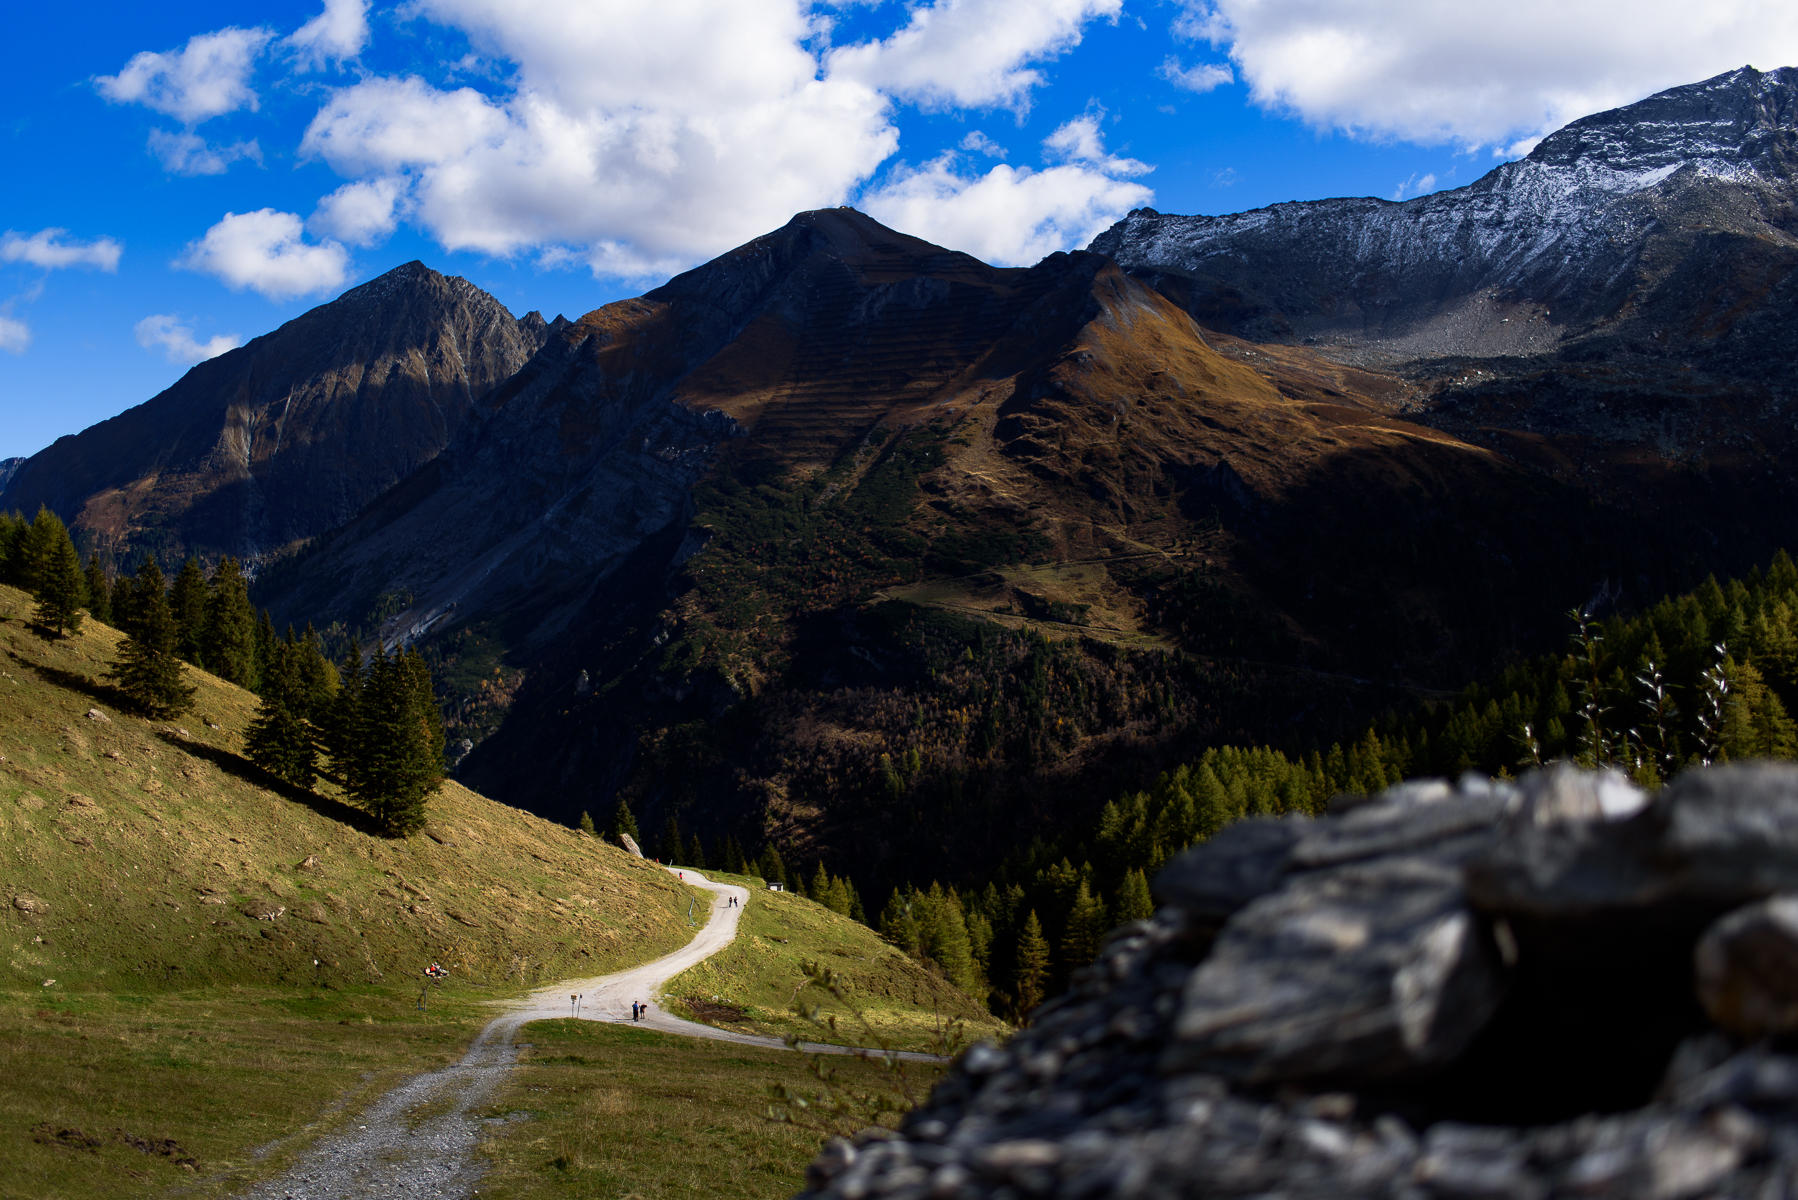 Mom and dad walk in the distance with the mountains of the Hintertux area in the background. Starting their walk at the Hintertux summit station, the destination is the rest station Bichl Alm, before the walk continues back down to the Hintertux valley station. Austria, October 8, 2018.